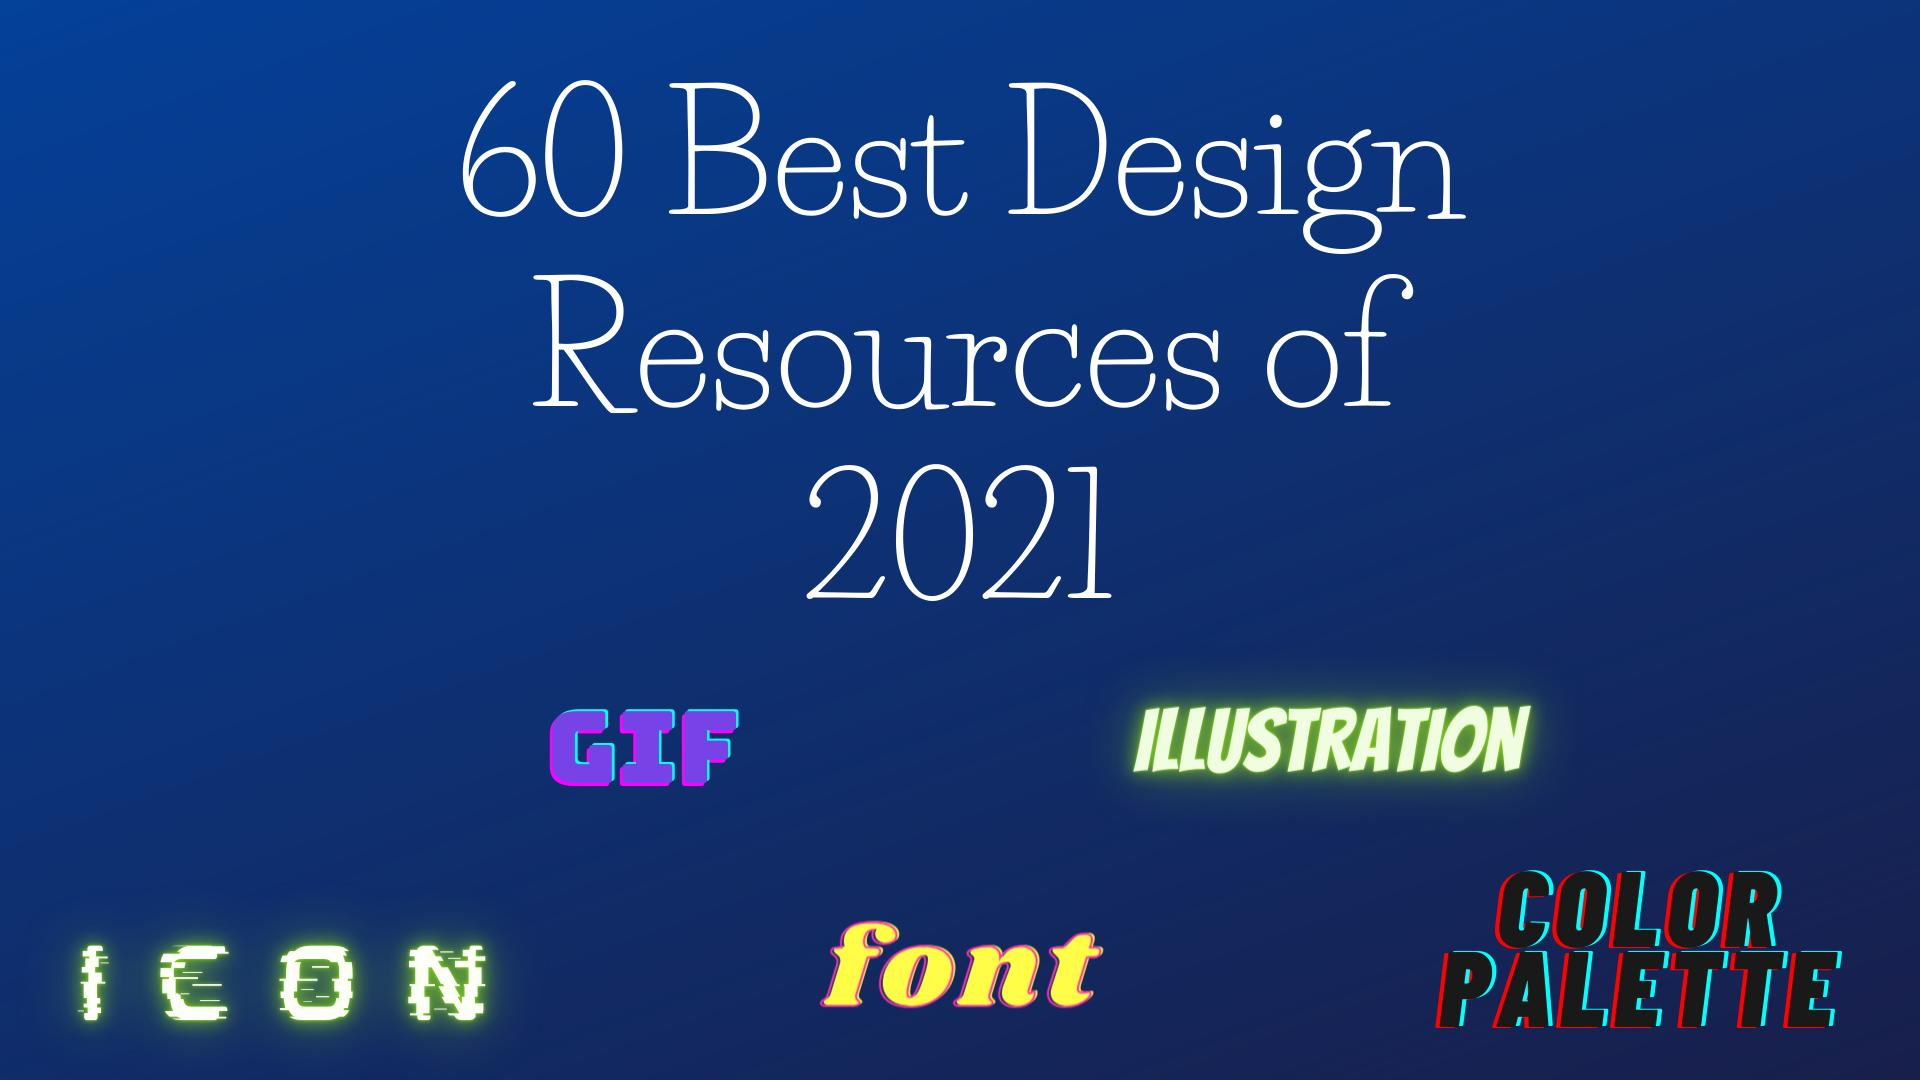 60 Best Design Resources of 2021